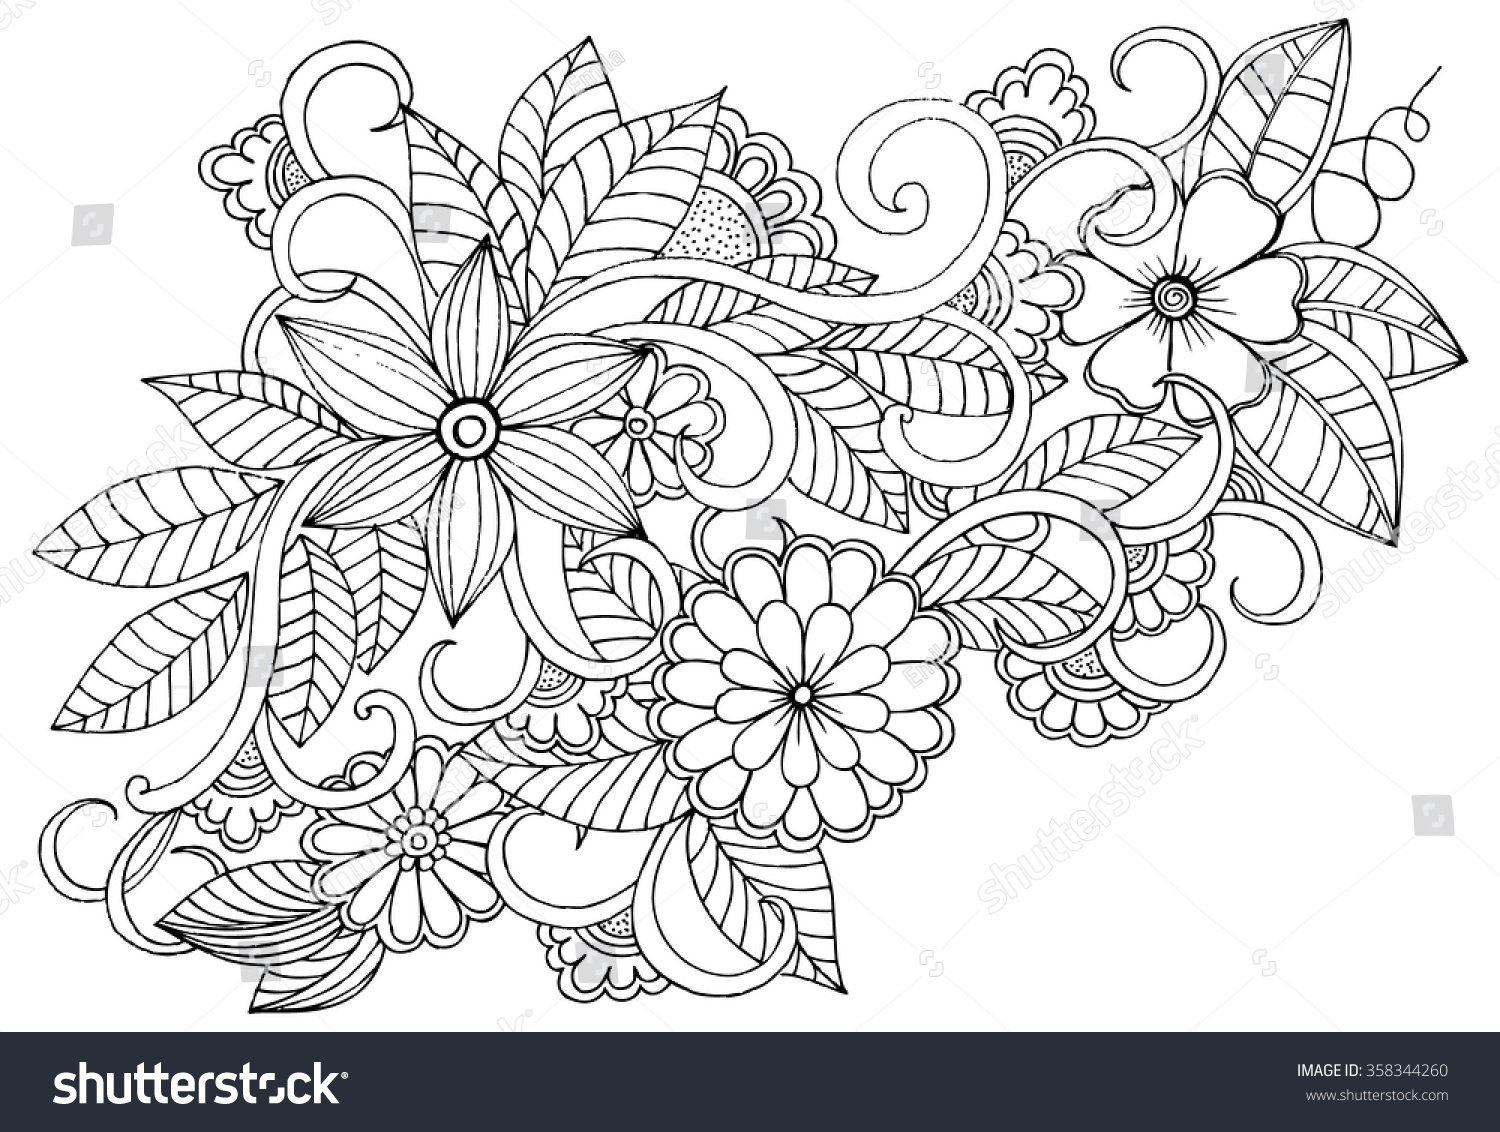 Doodle floral pattern black white page stock vector Relaxing coloring books for adults